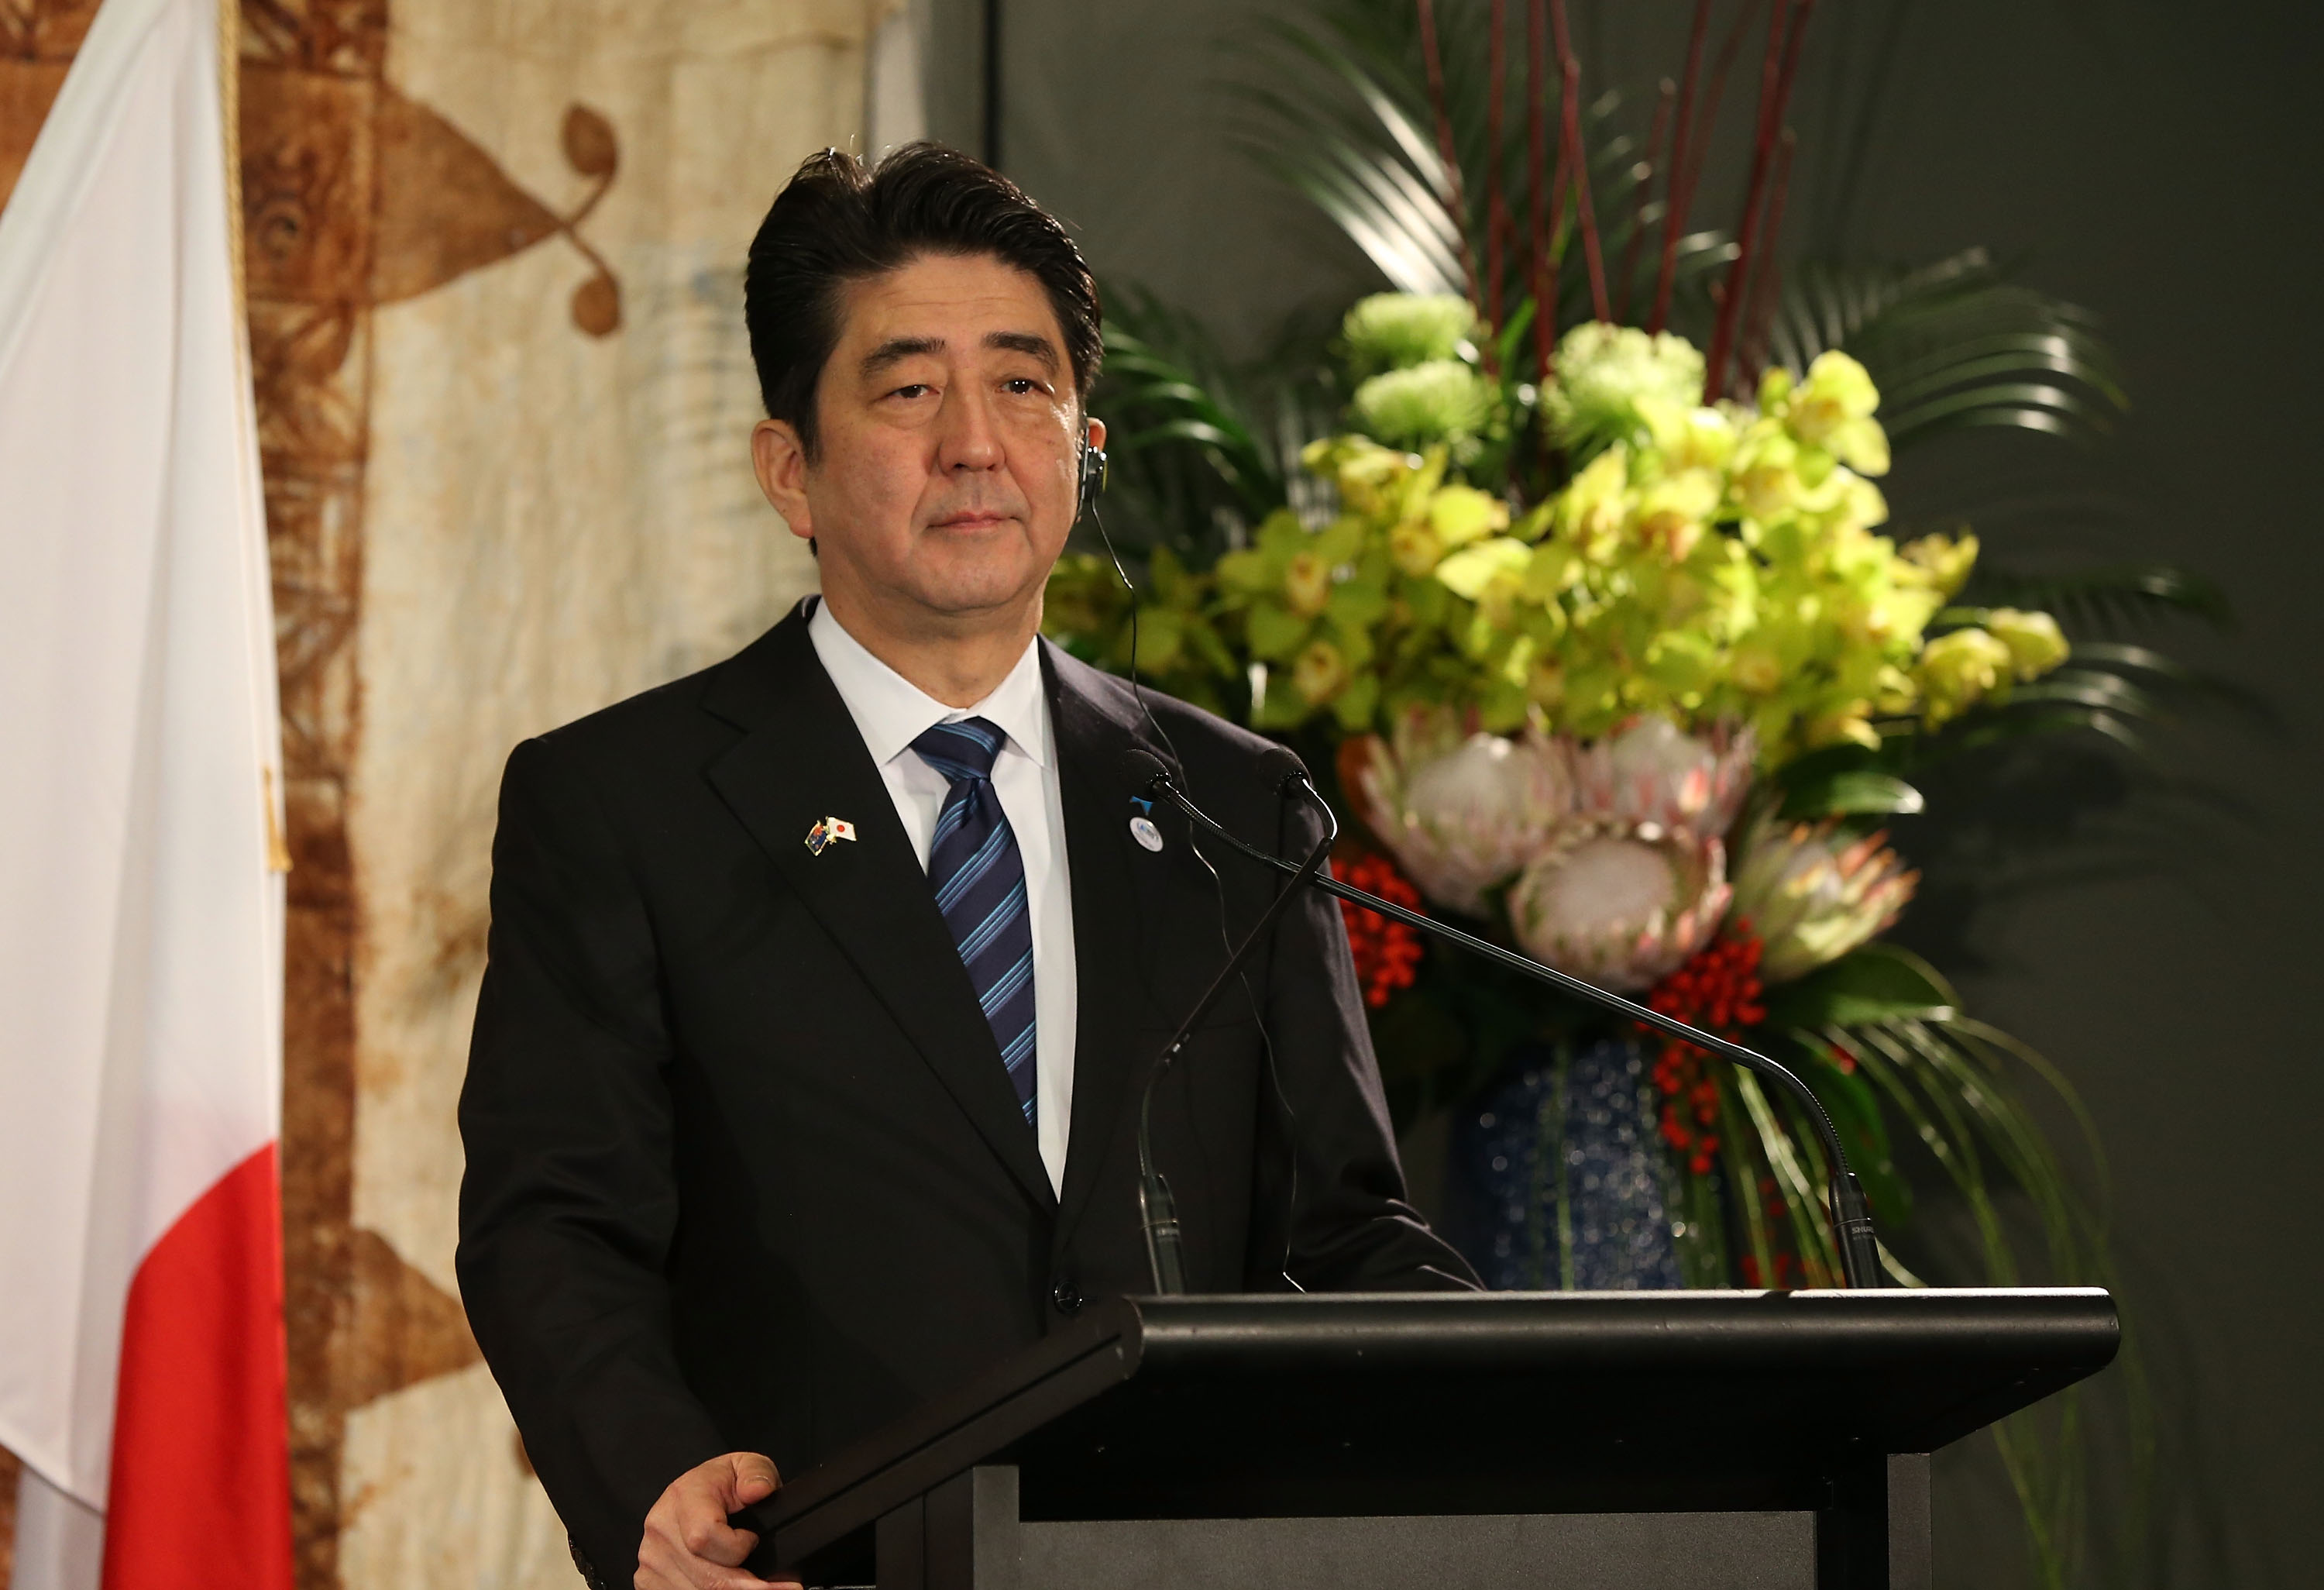 Japanese Prime Minister Shinzo Abe speaks to the media after a traditional Maori welcome at Government House and talks with New Zealand Prime Minister John Key on July 7, 2014, in Auckland.